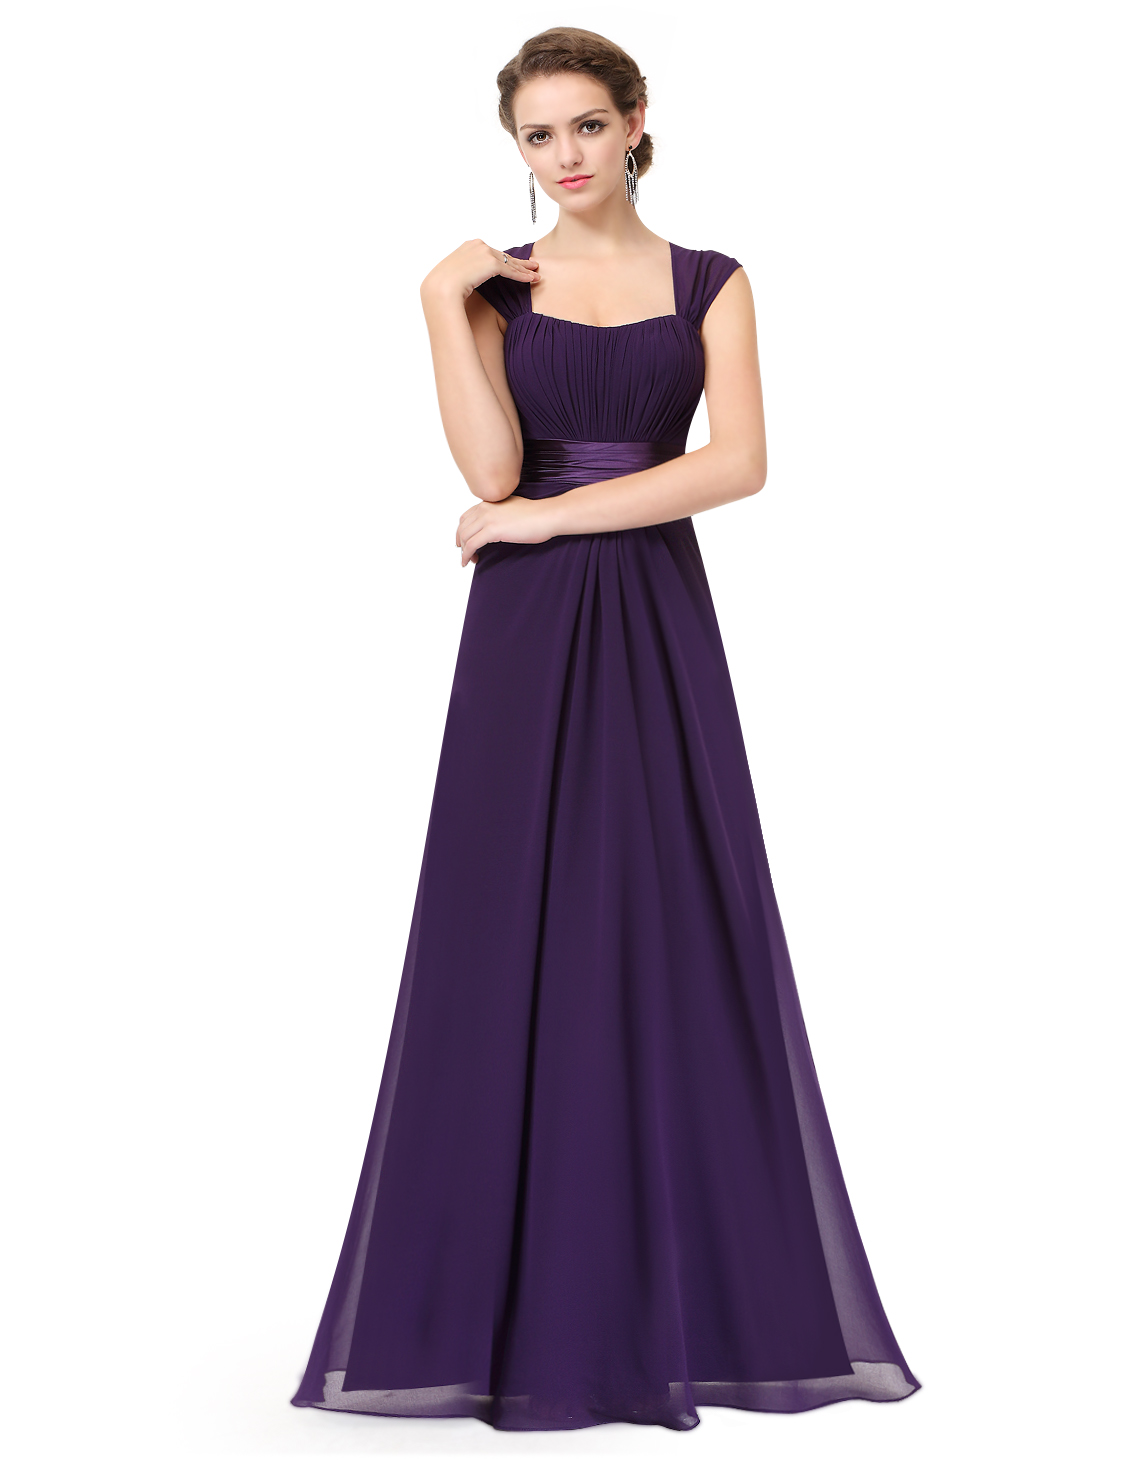 New long chiffon wedding formal evening party ball gown for Ever pretty wedding dresses